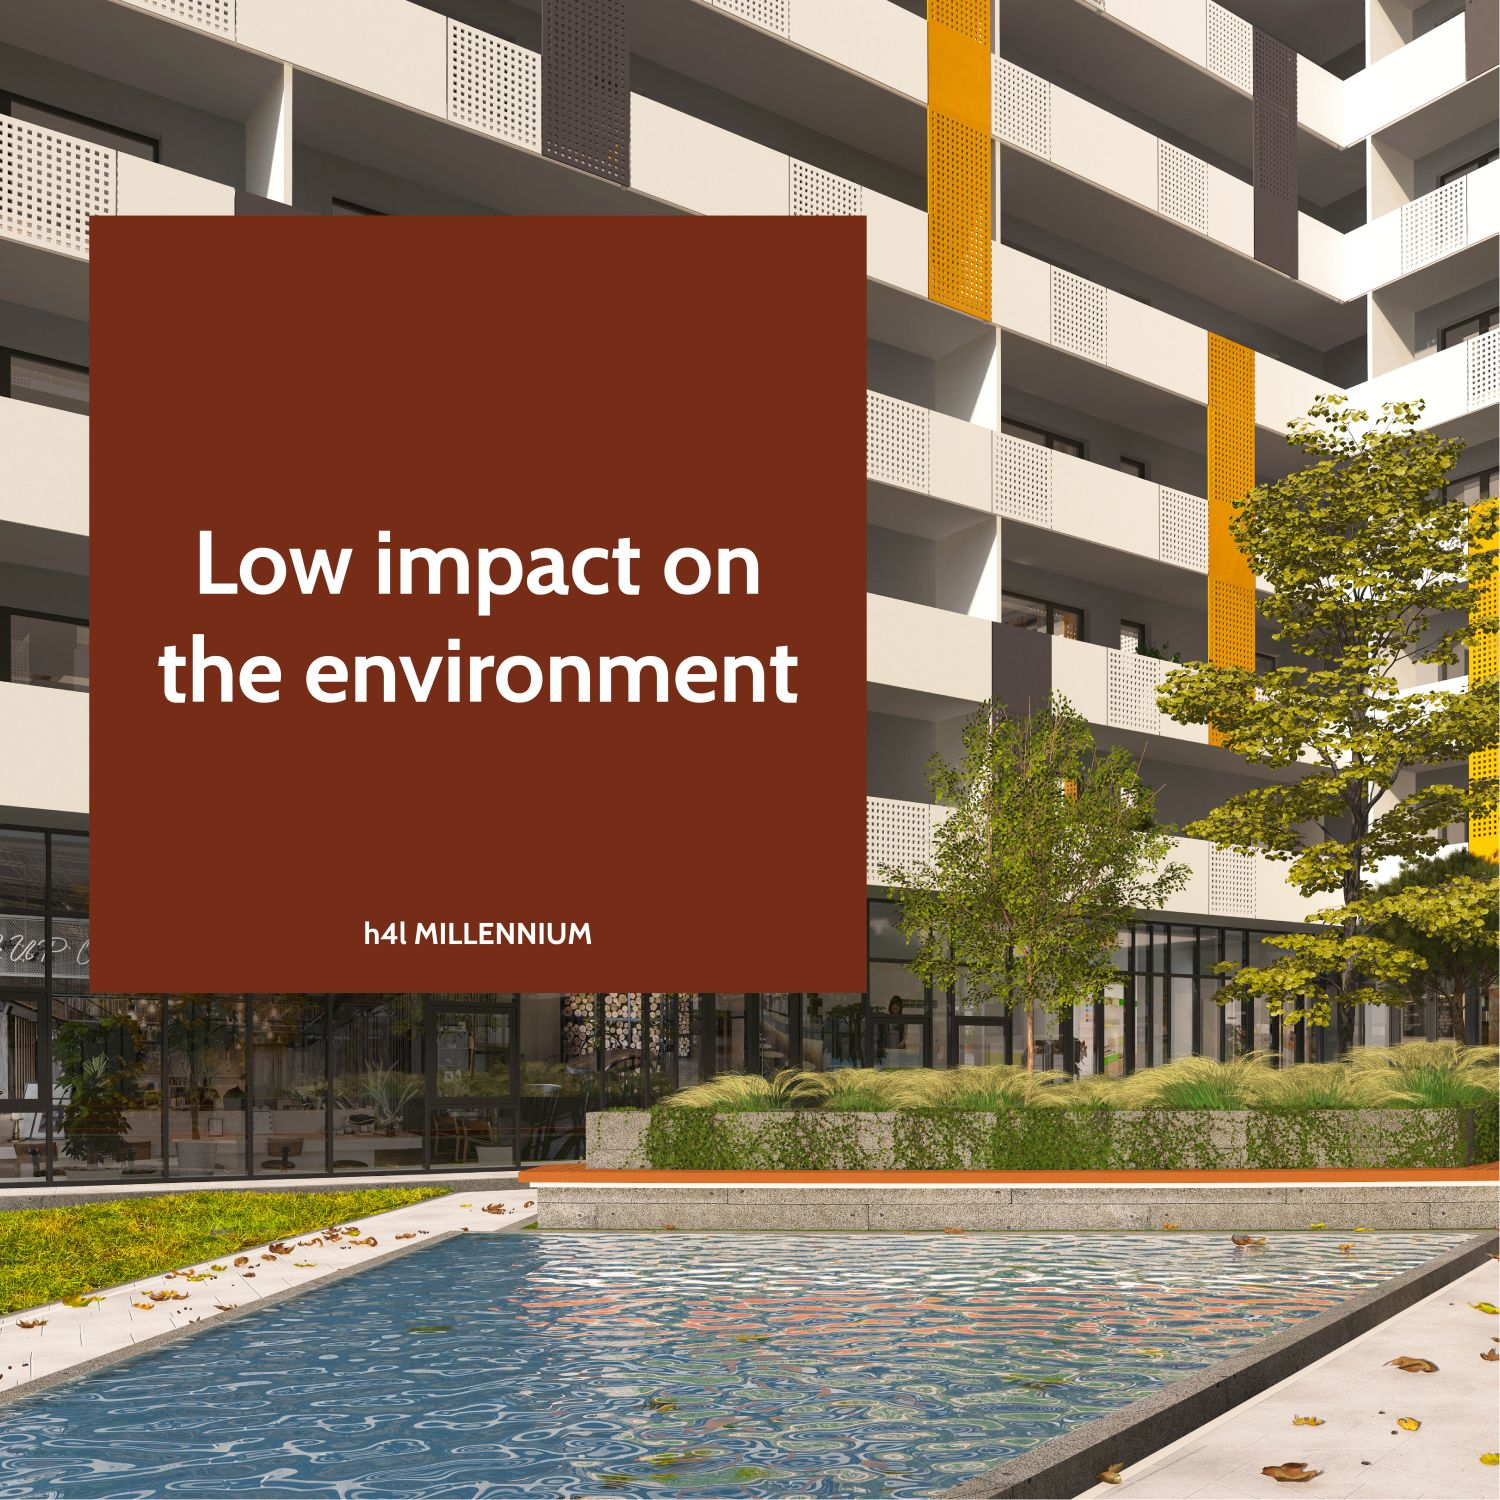 Low impact on the environment